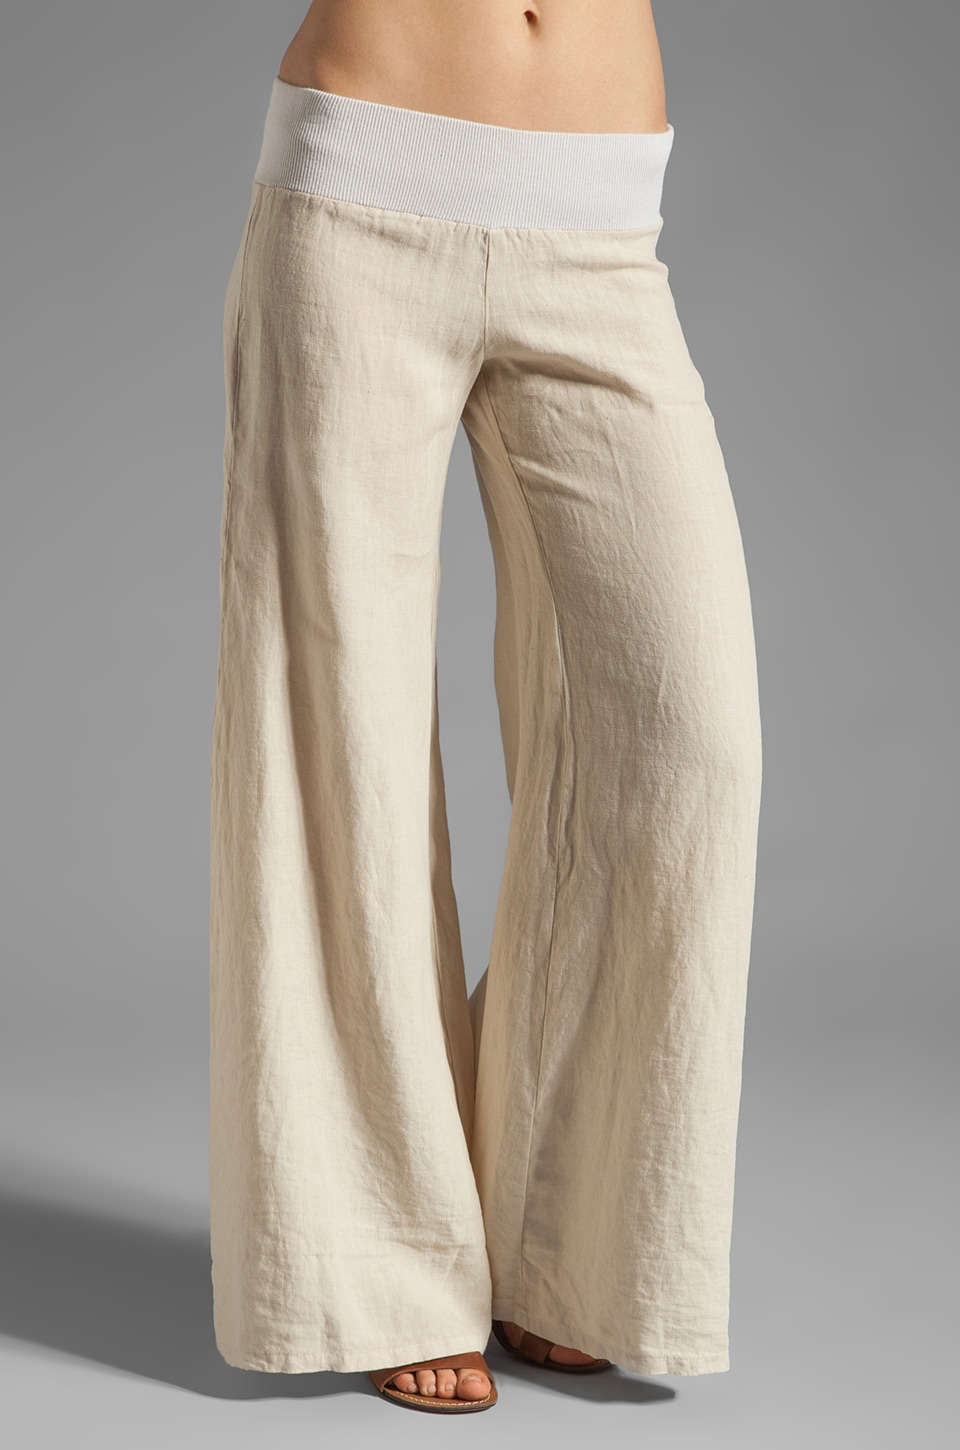 Enza Costa Linen Wide Leg Pant in Natural